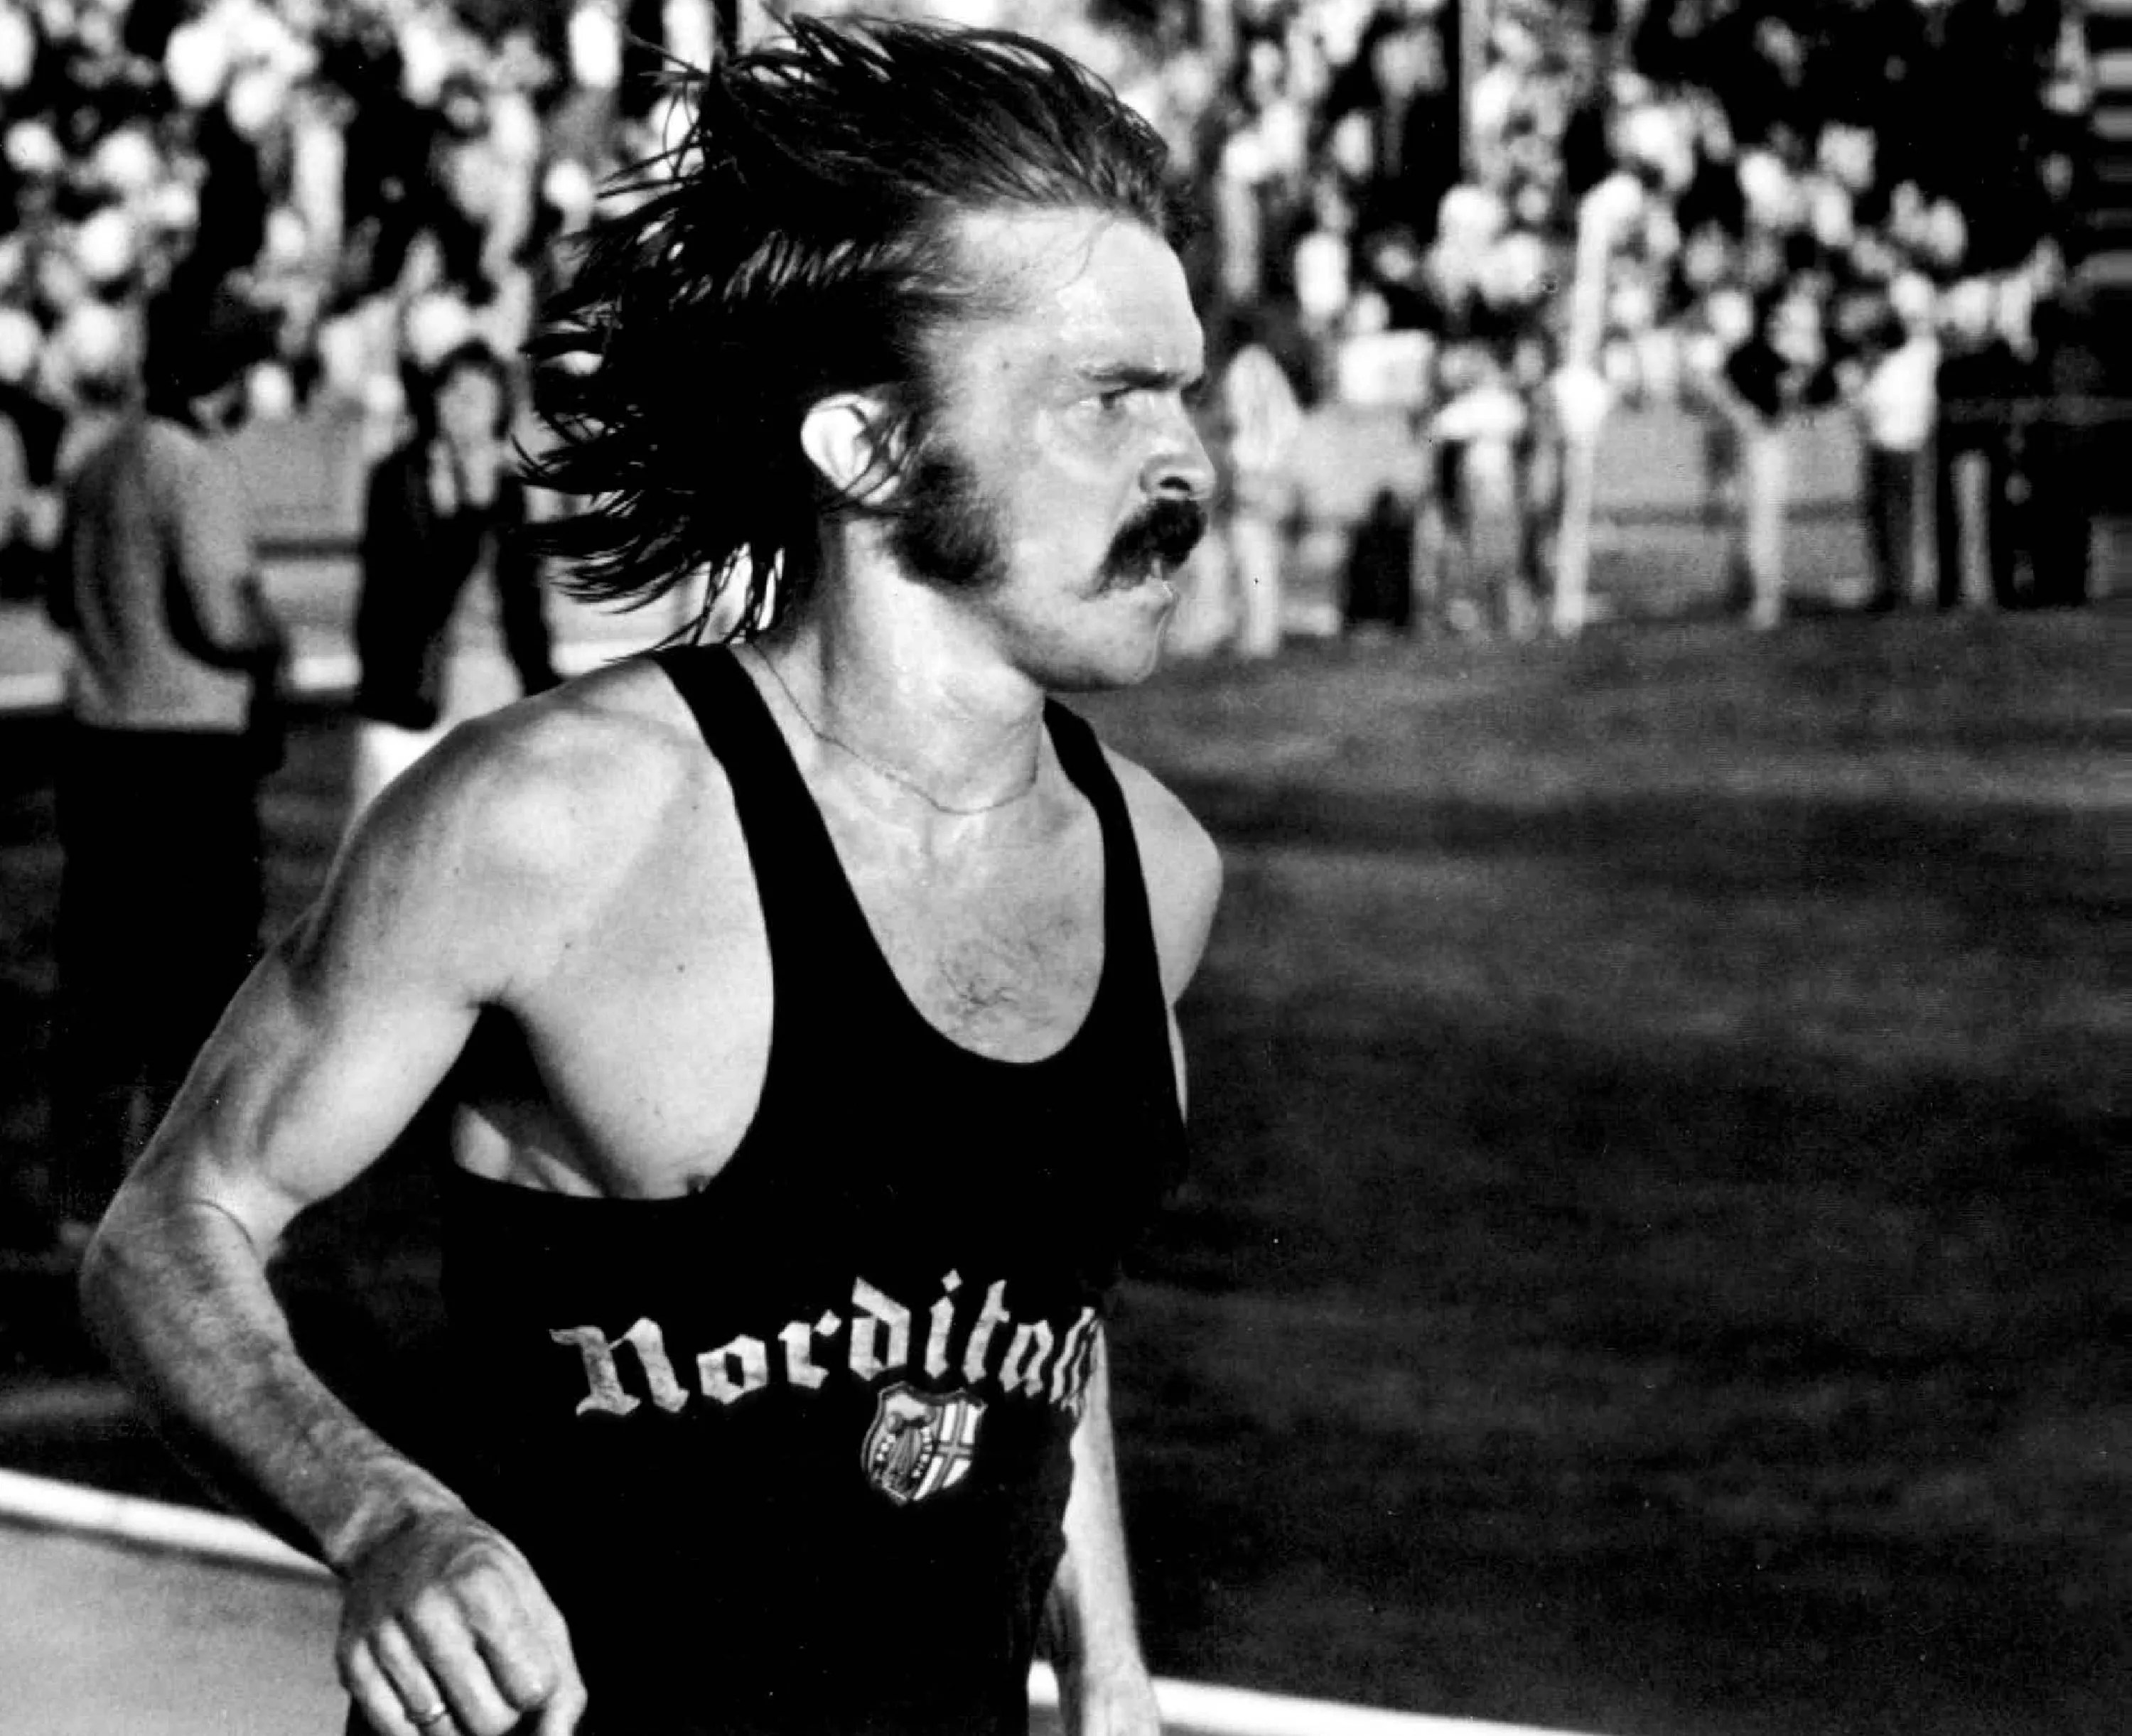 College Life Quotes Wallpapers Steve Prefontaine Still Resonates 40 Years After His Death